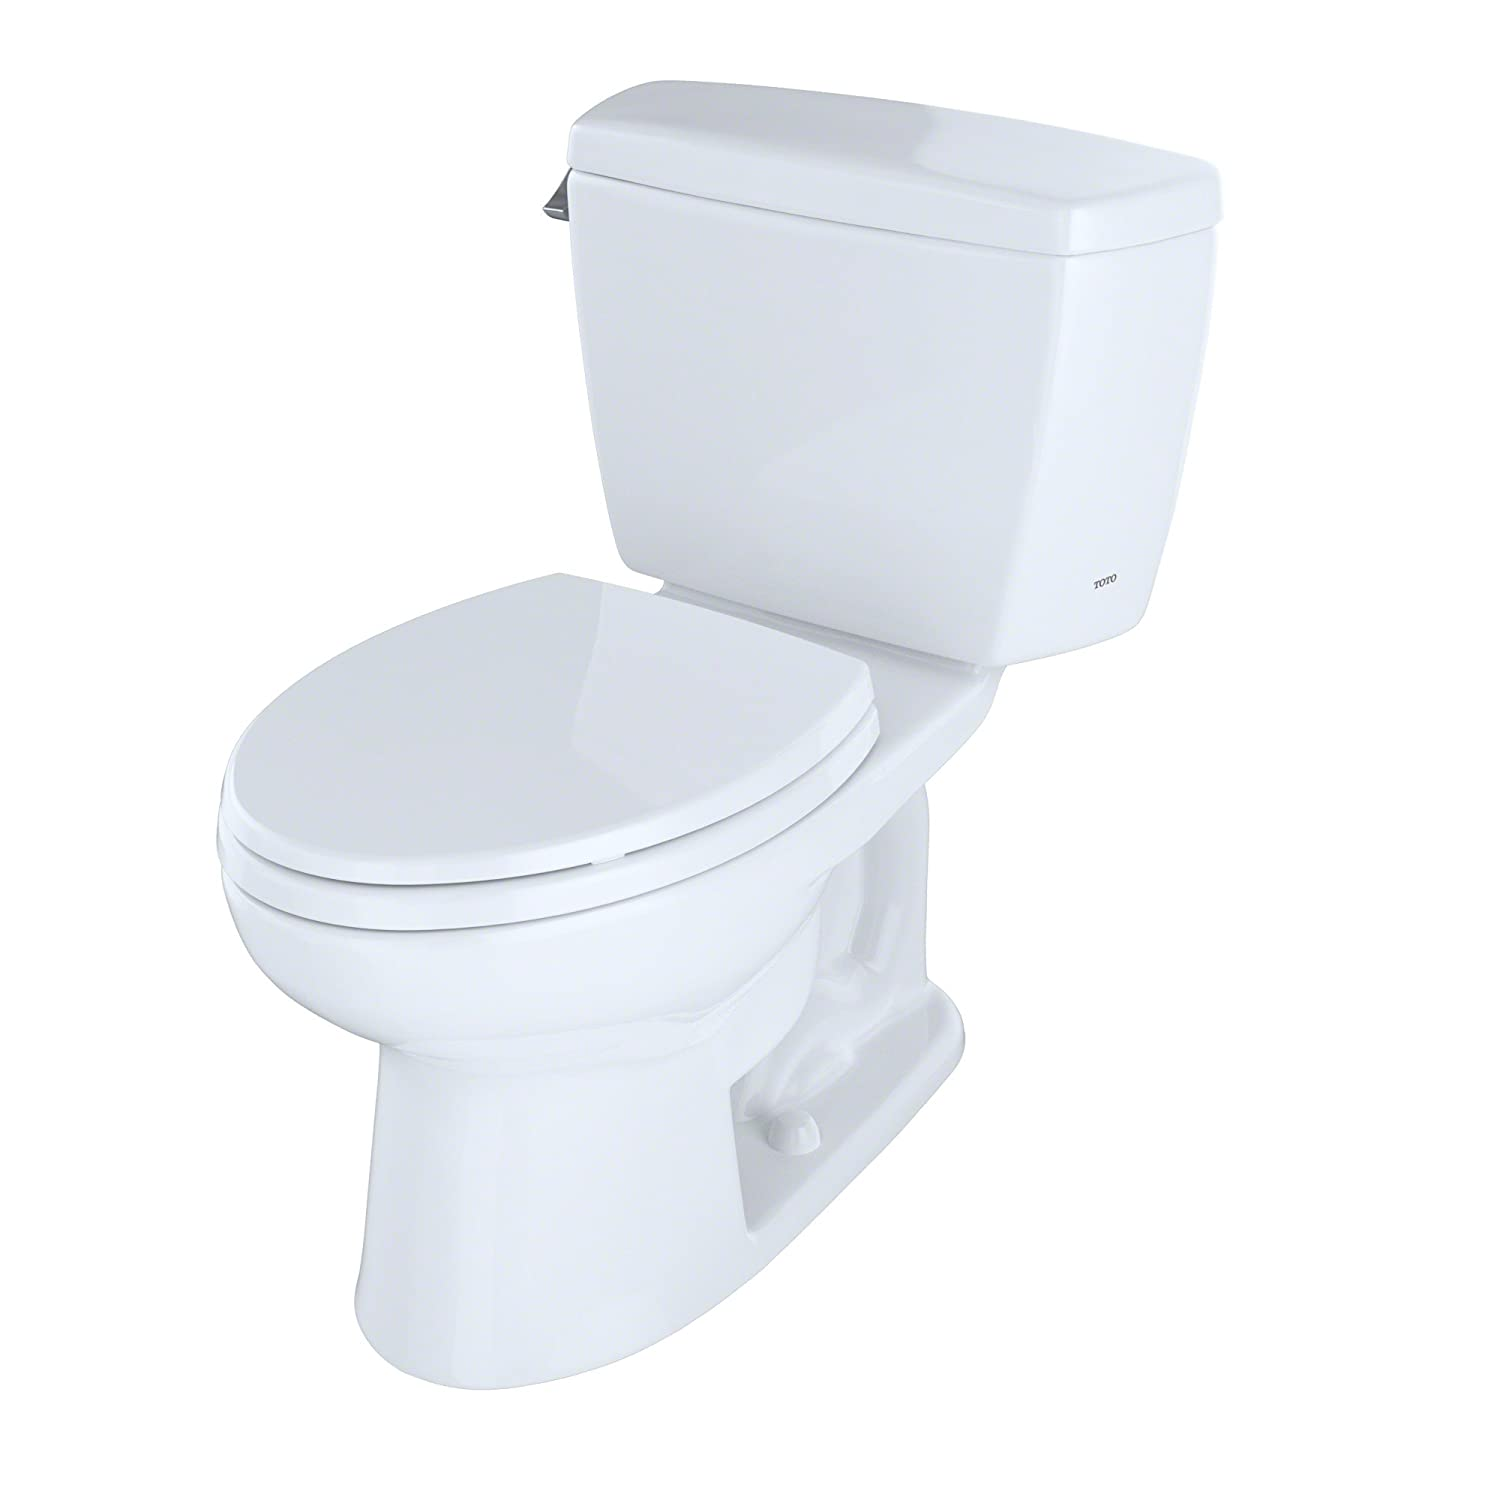 Toto CST744SF.10#01 CST744SF.10No.01 Drake Two-Piece Toilet, 1.6-GPF ...